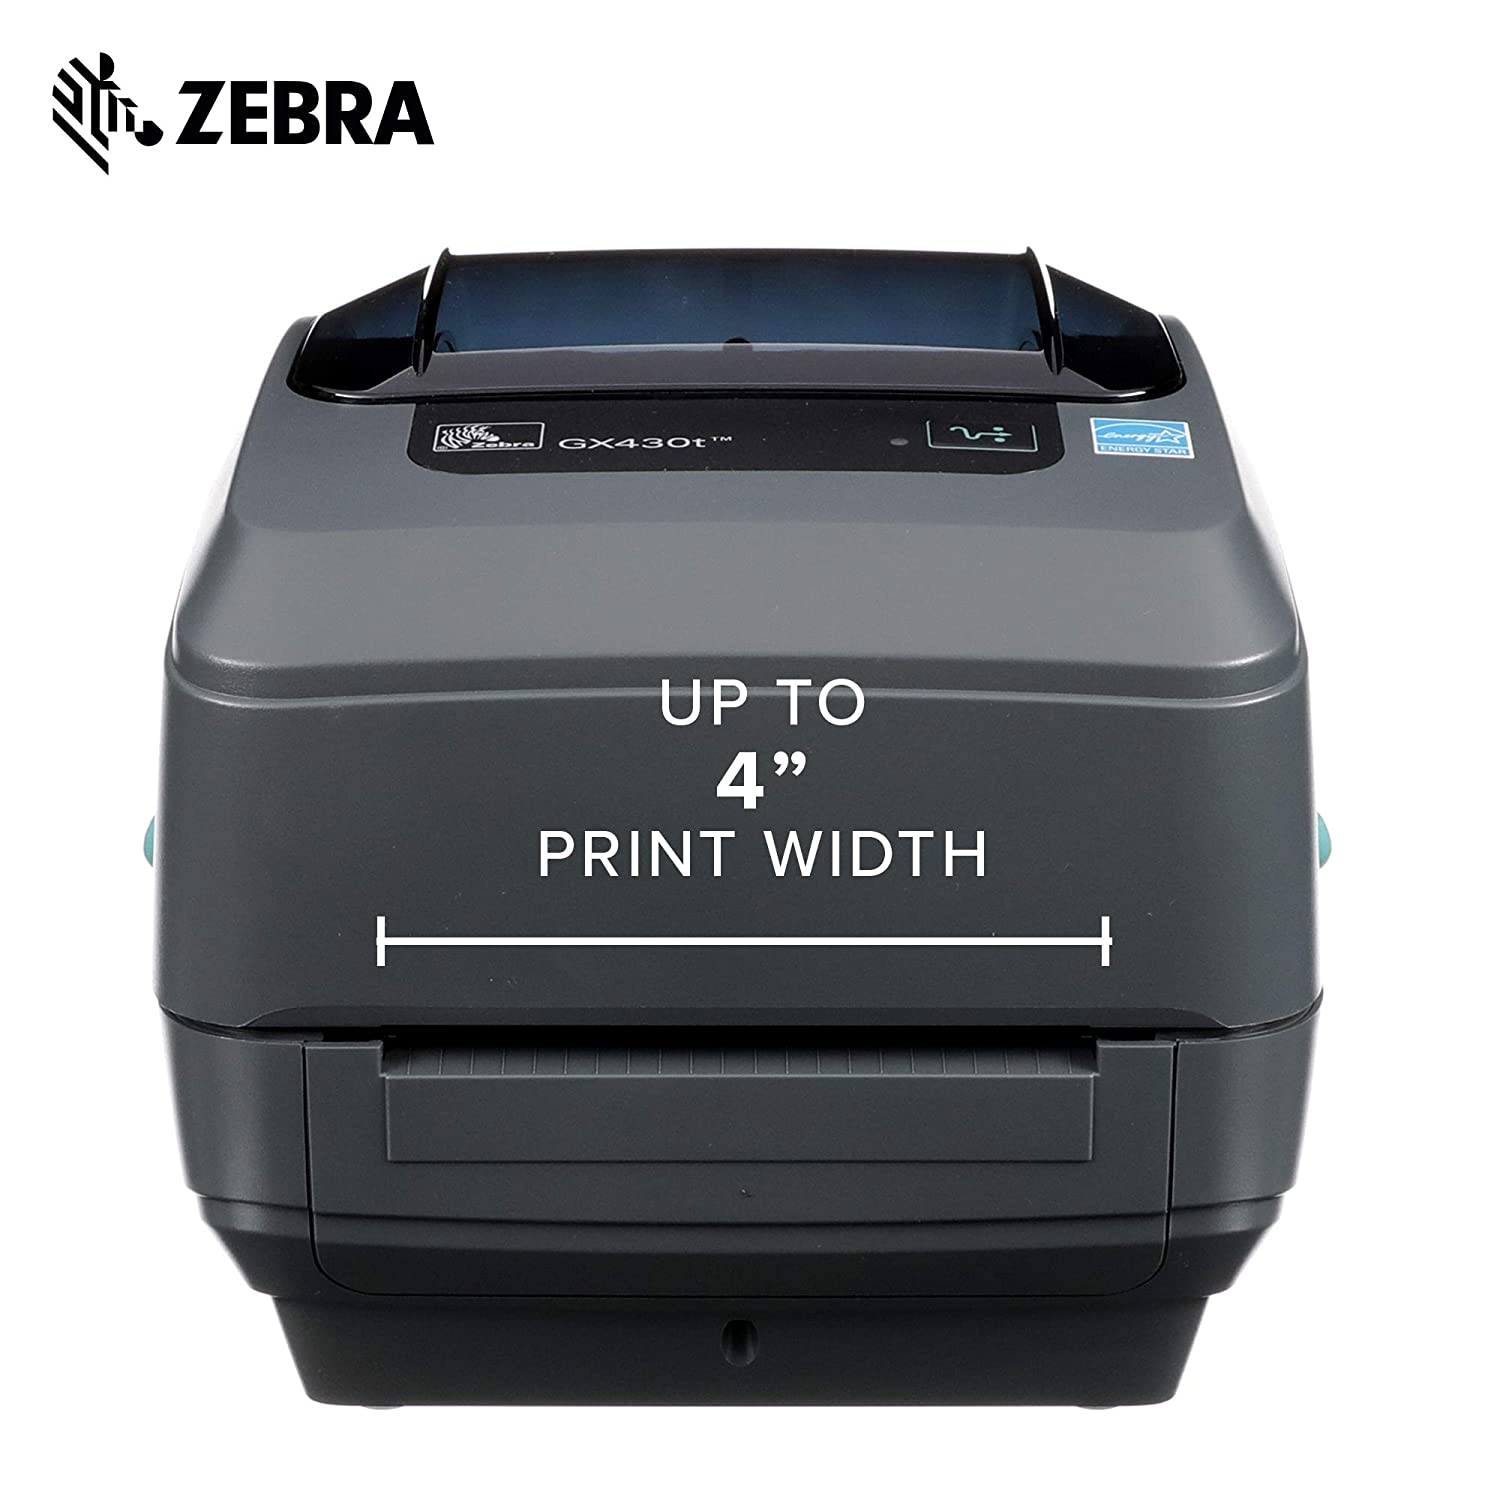 Zebra - GX430t Thermal Transfer Desktop Printer for Labels, Receipts,  Barcodes, Tags, and Wrist Bands - Print Width of 4 in - USB, Serial, and